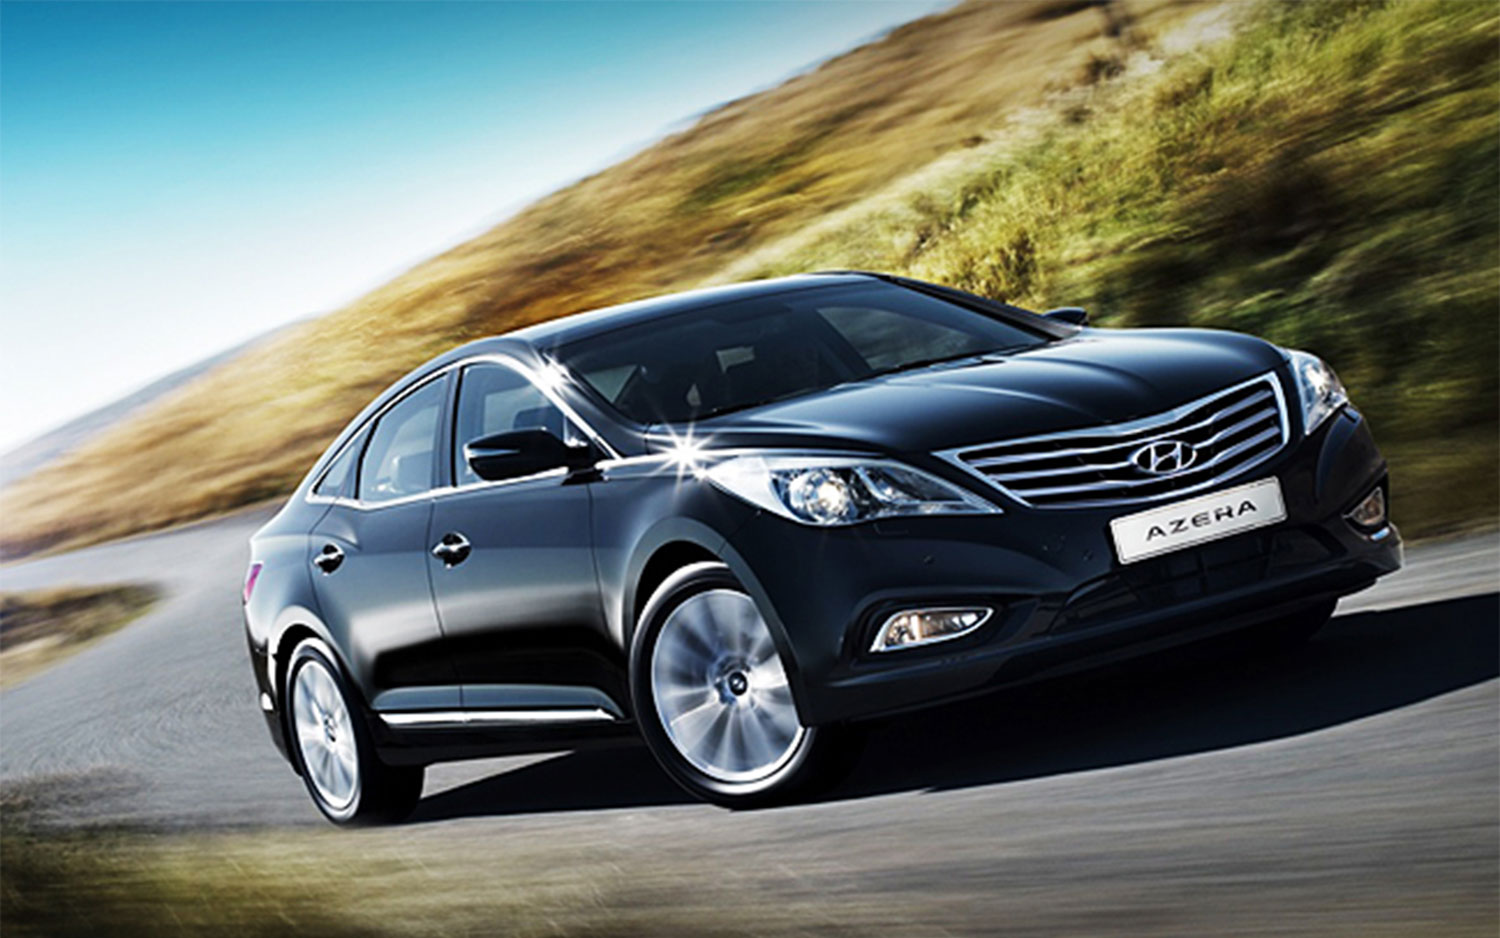 2012 Hyundai Azera Front Three Quarter1